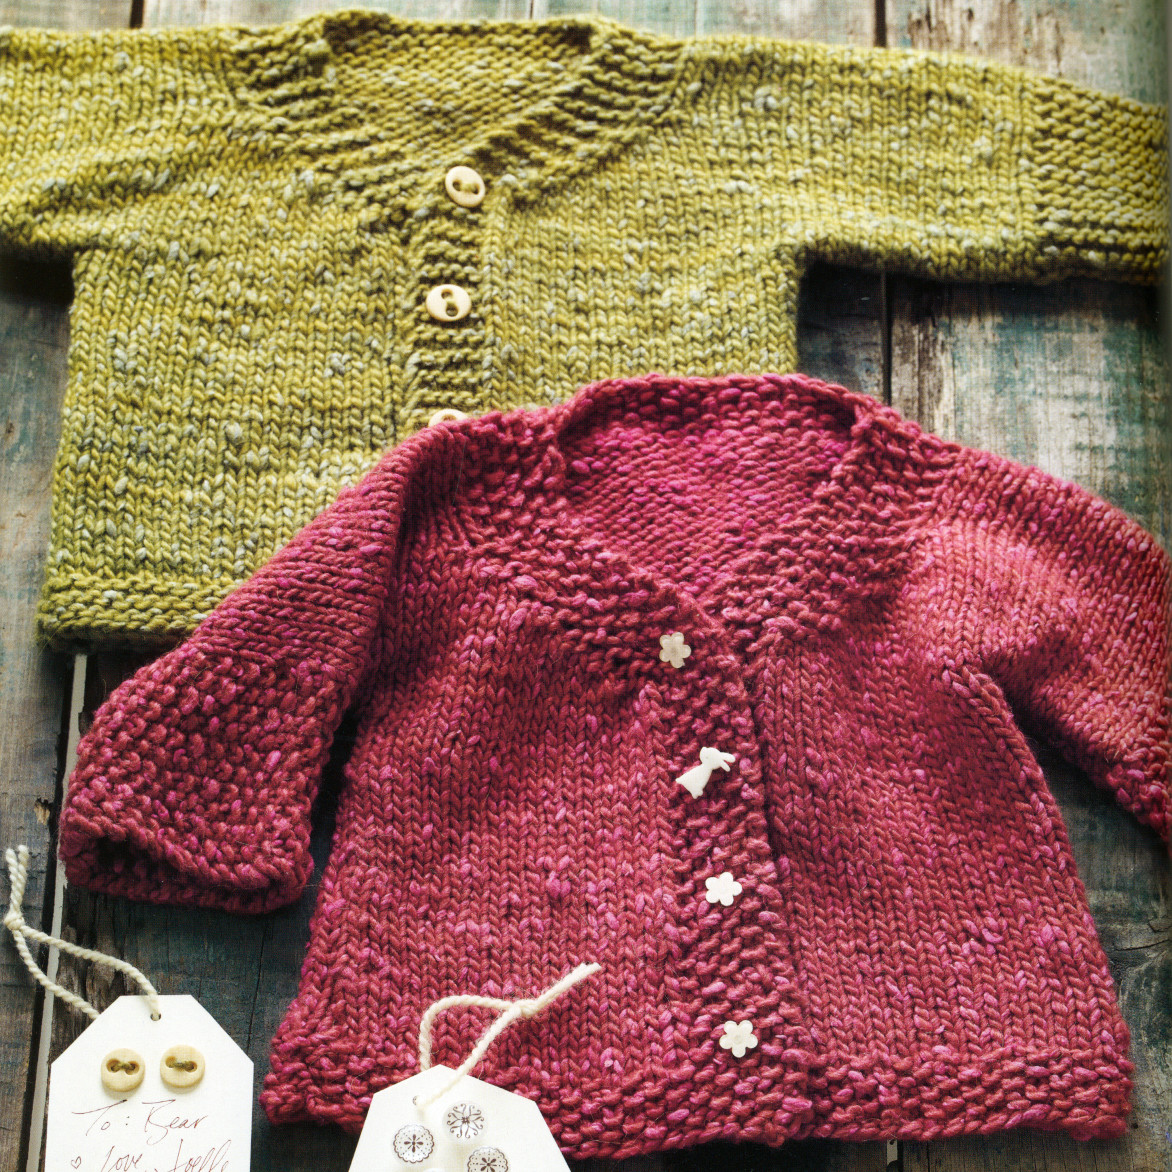 Easy Knitting Patterns Best Of Easy Knit Baby Sweater Patterns Bronze Cardigan Of Superb 44 Ideas Easy Knitting Patterns